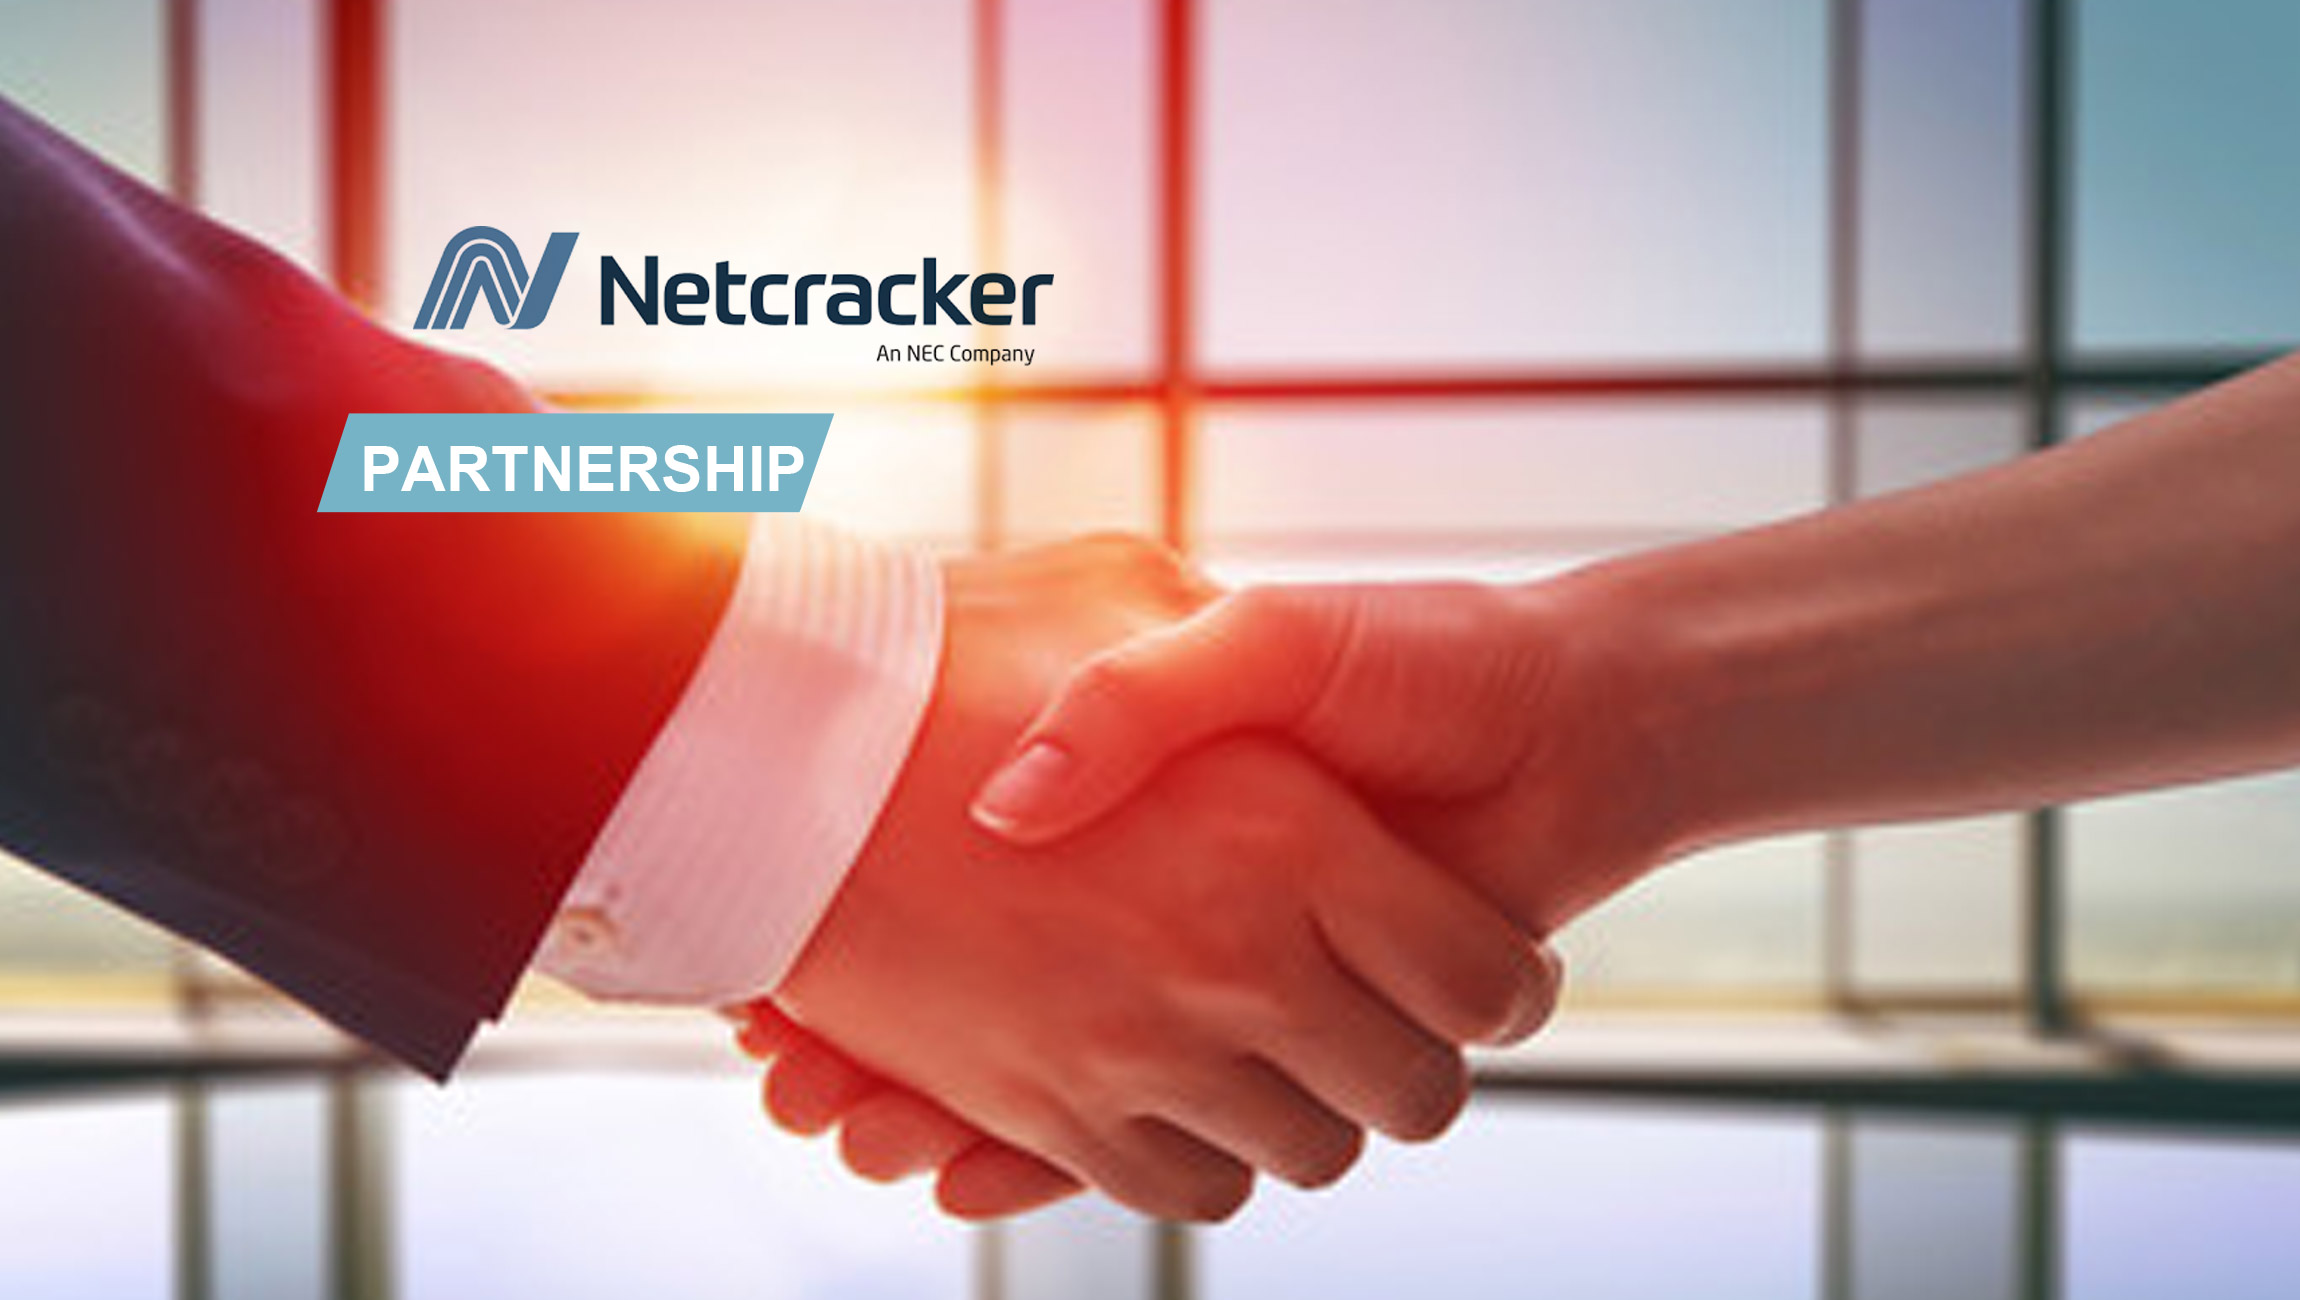 Netcracker Continues Partnership with Leading Malaysian Operator Maxis to Optimize Customer Experience for B2C and B2B Services